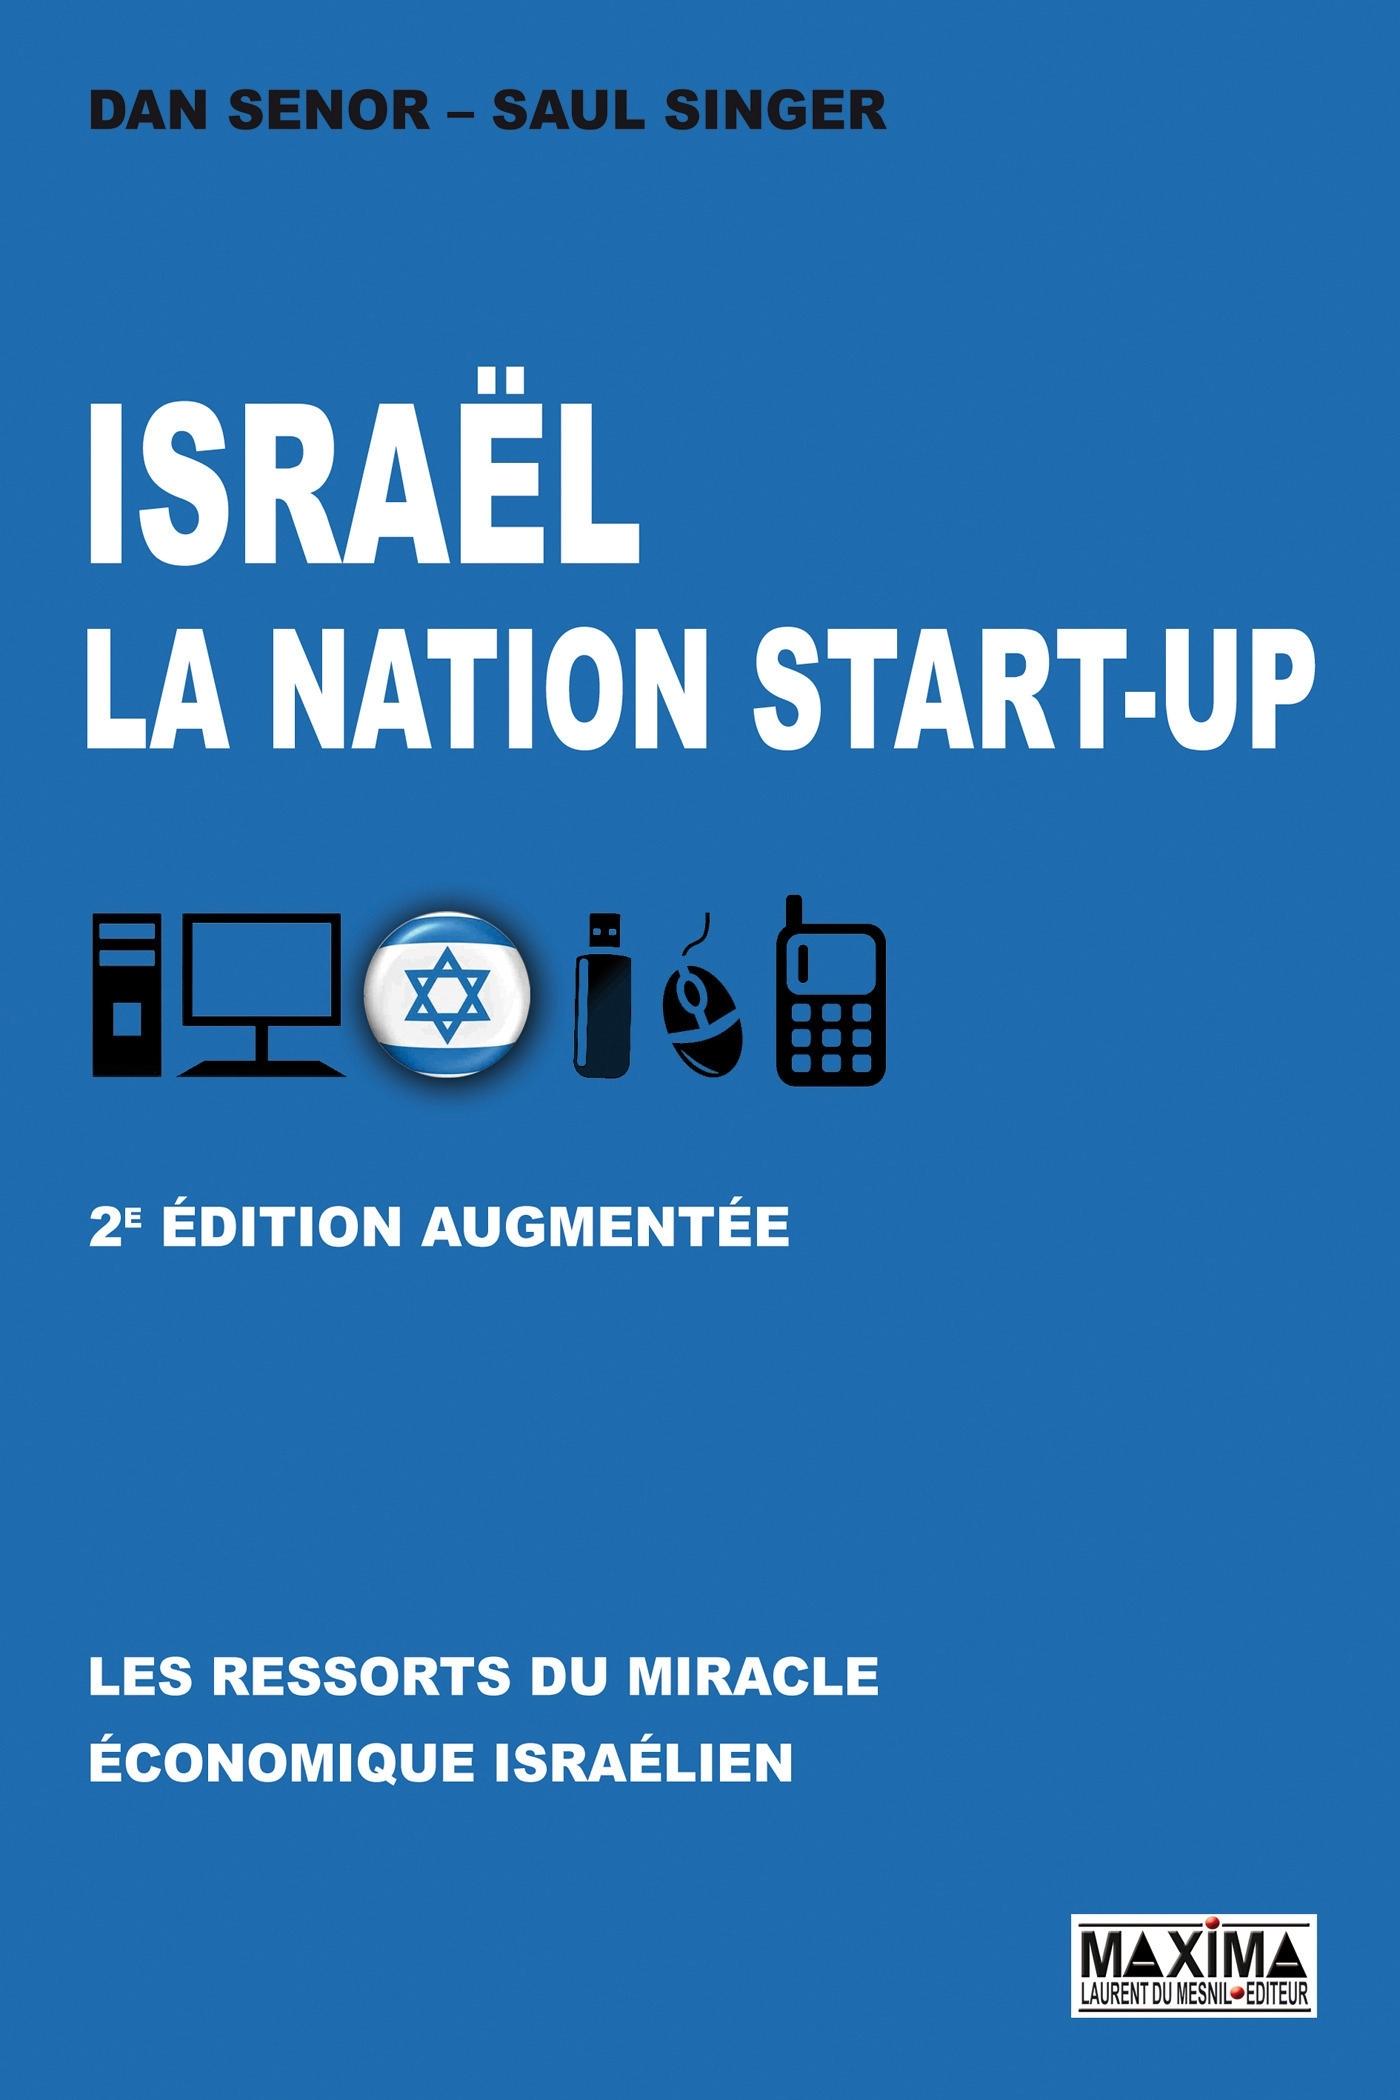 ISRAEL, LA NATION START-UP